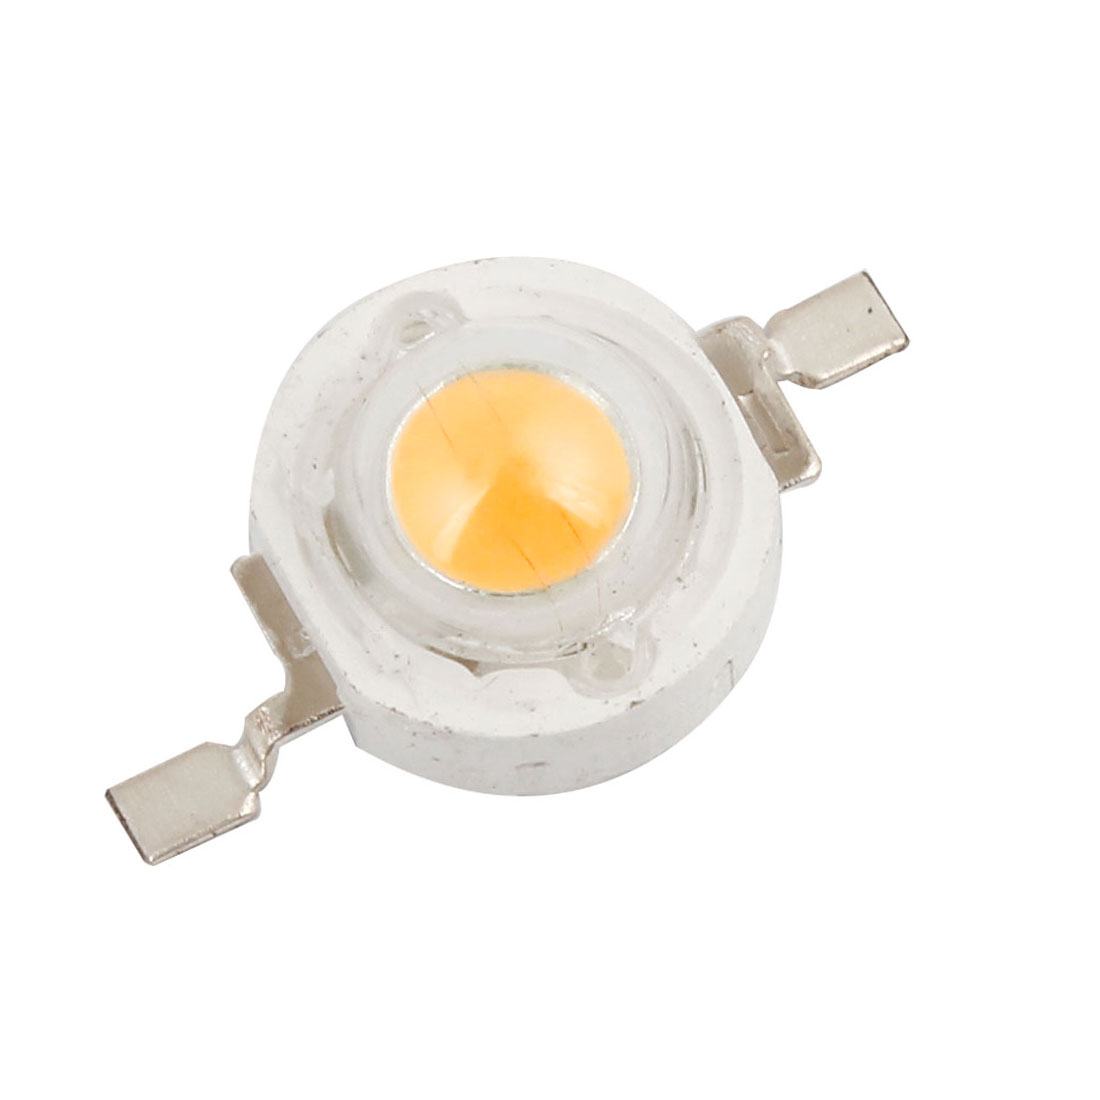 3.2-3.4V 300-350mA 1W Warm White High Power LED Bead Diodes Chip Lamp Bulb